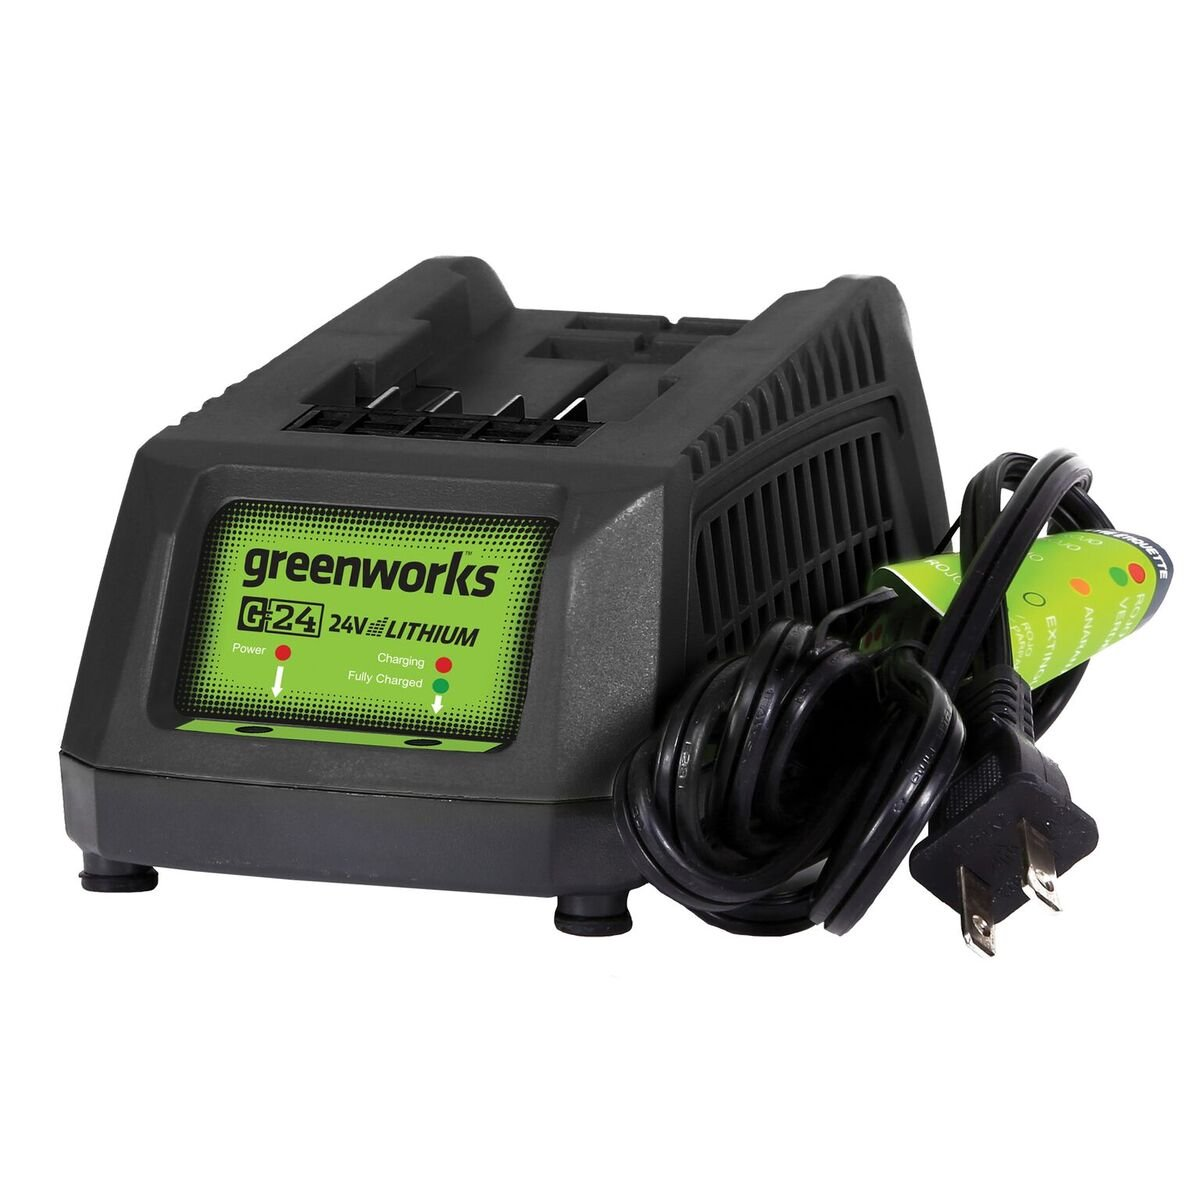 Greenworks 24V Lithium Ion Battery Charger 29862